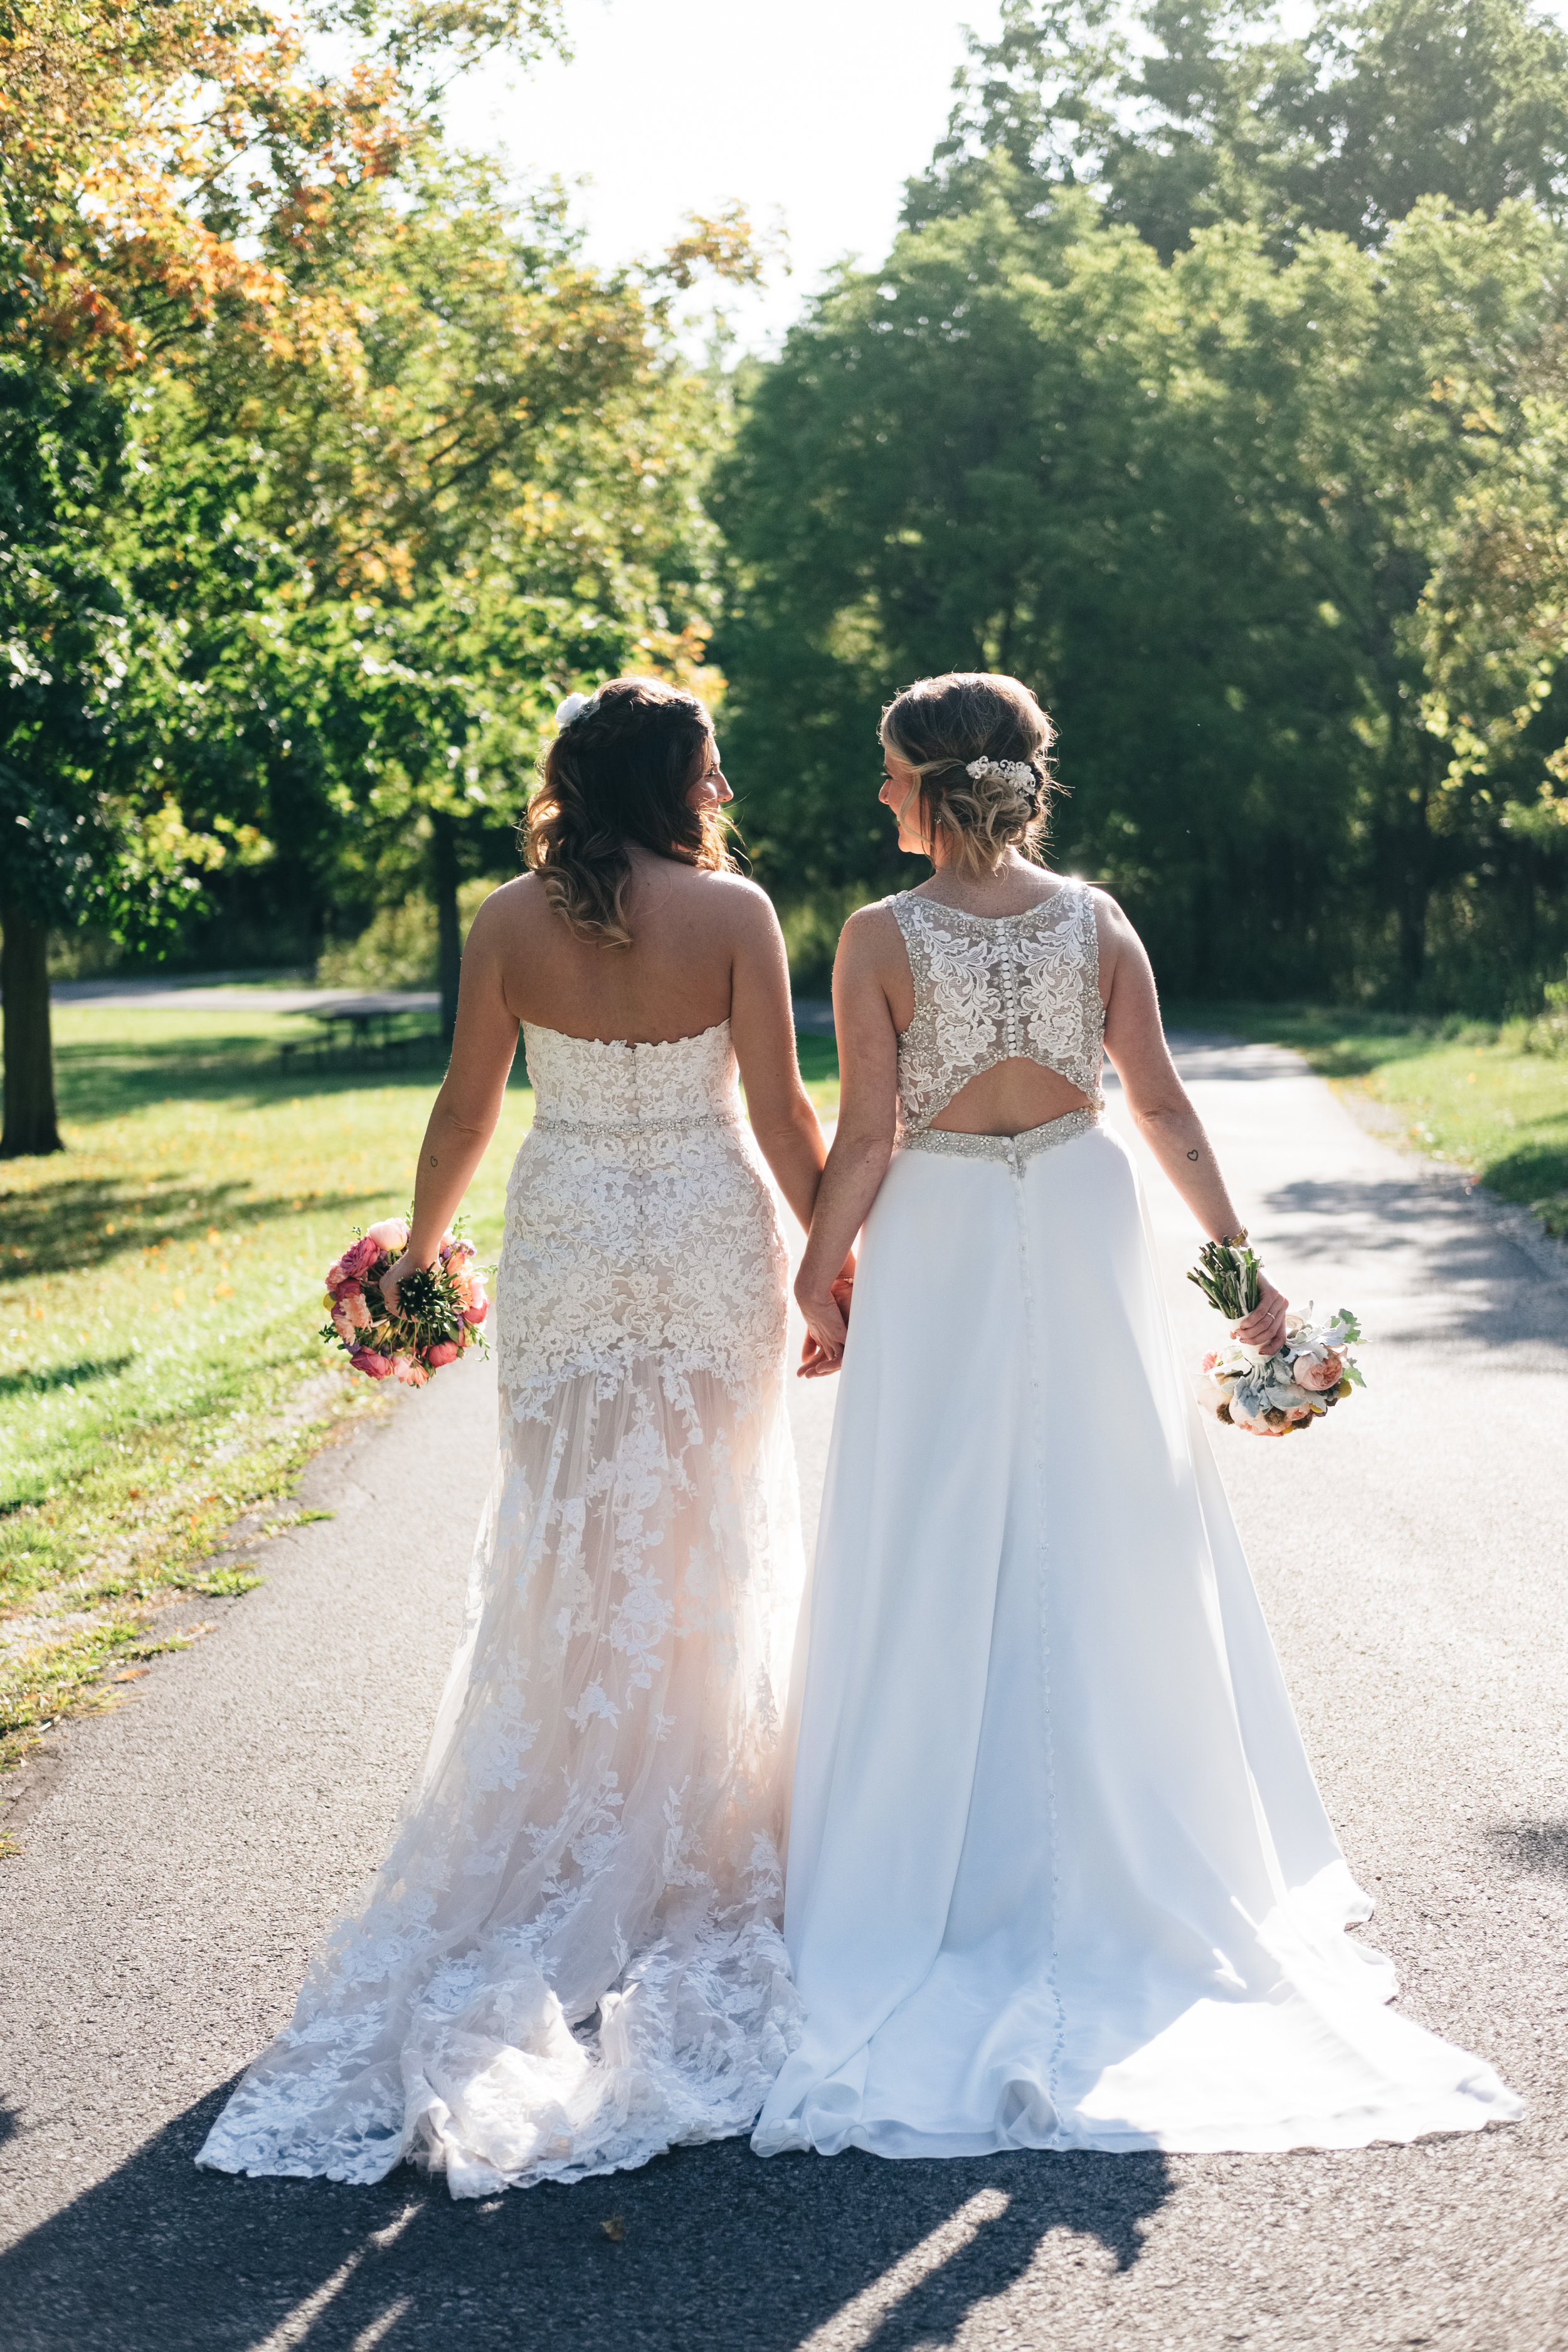 Brides on Wedding Day at Same Sex Marriage with Wedding Dress Inspiration from Toledo Photographers